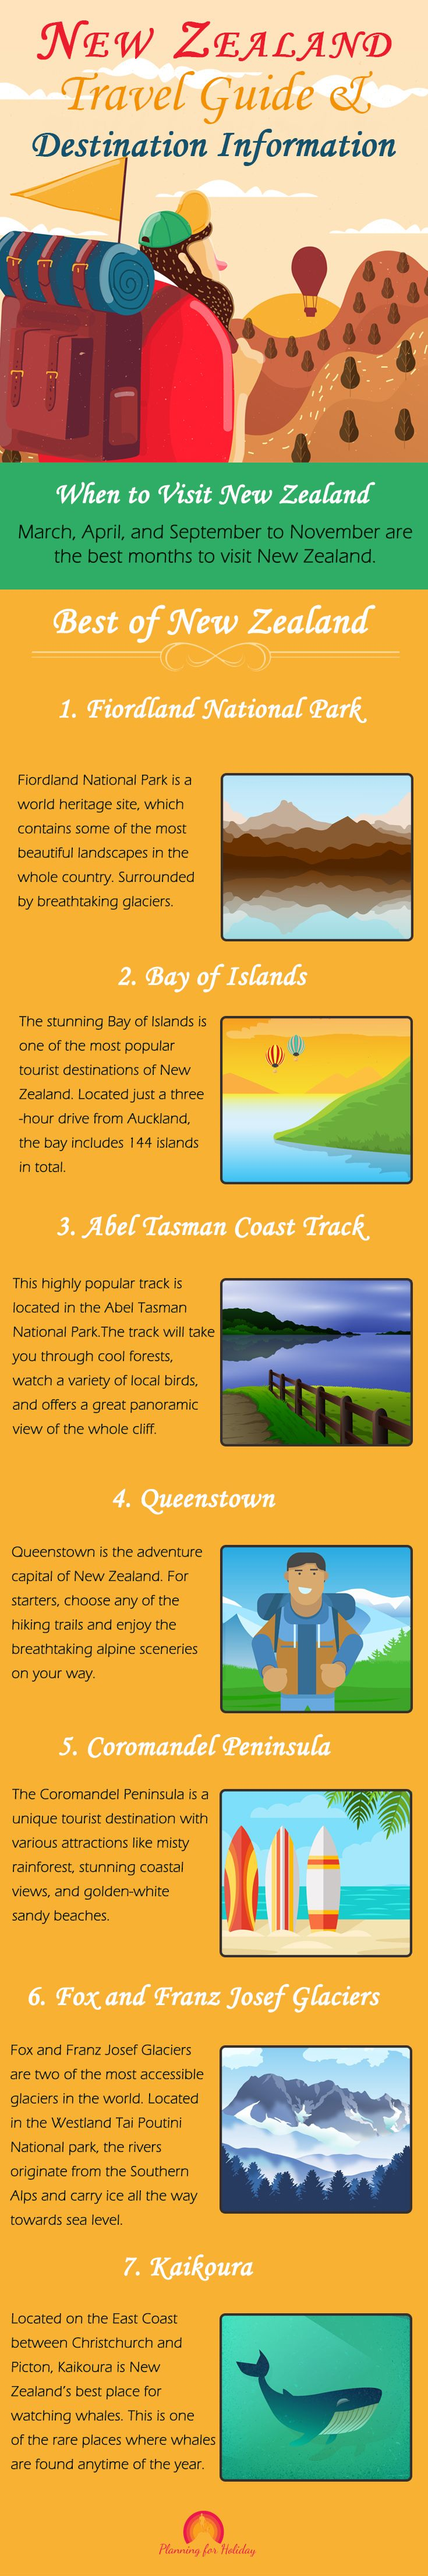 New Zealand Travel Guide and Destination Information. Adventure lovers will have their paradise in New Zealand. All of its popular attractions like hiking, skiing, caving, rafting, skydiving, bungy jumping, etc. are aimed at getting you outside and having some lifetime experiences.